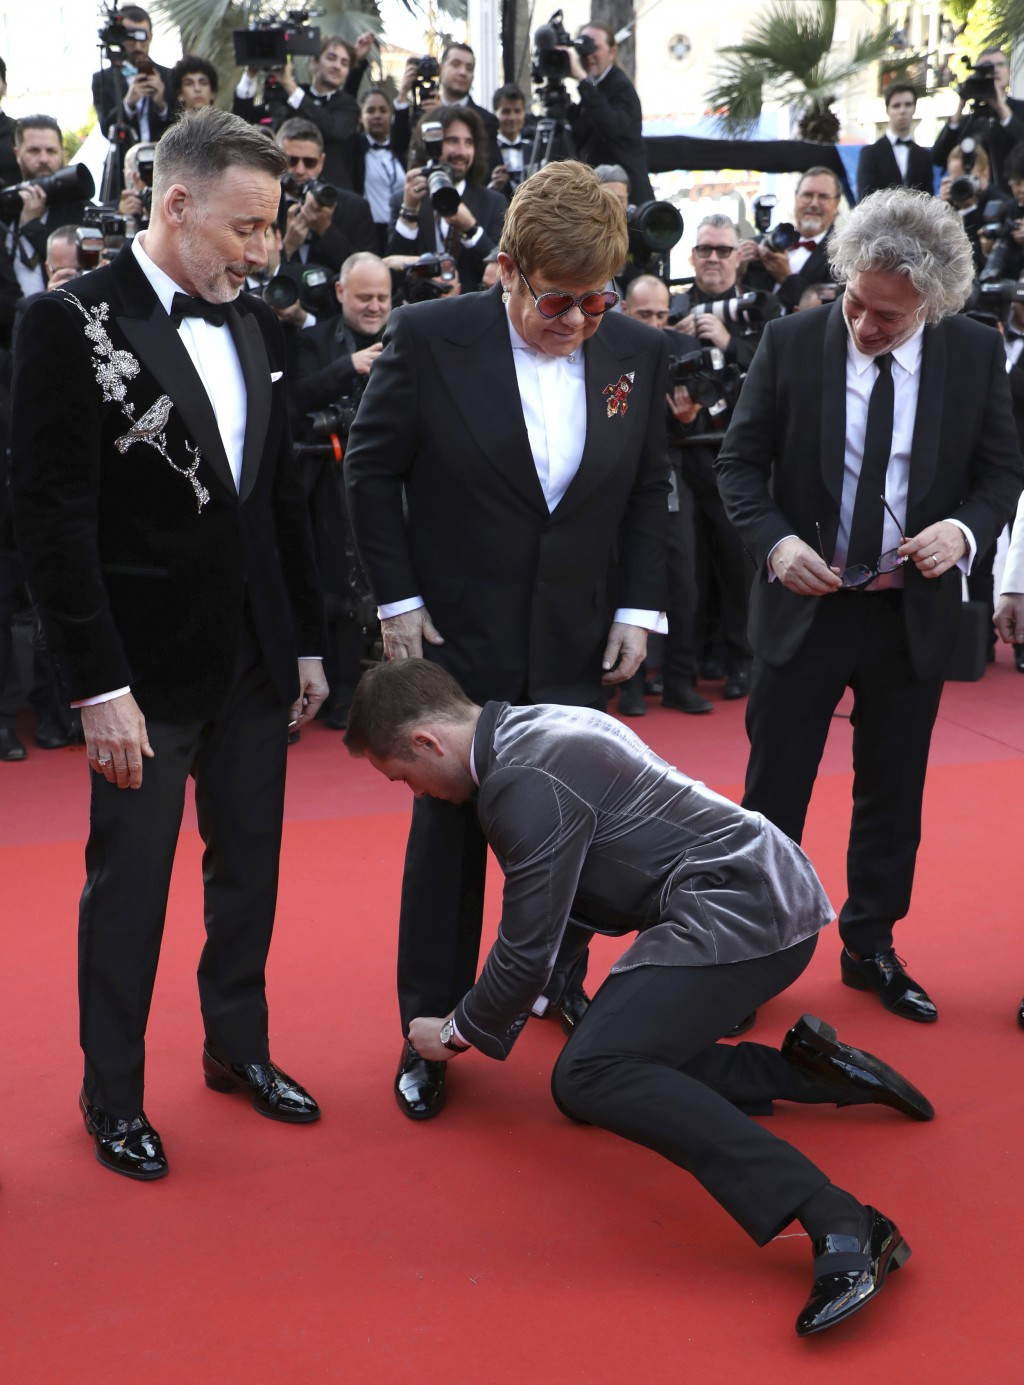 Actor Taron Egerton, center, ties the shoelaces of singer Elton John, center top, as they pose with producer David Furnish, director Dexter Fletcher,